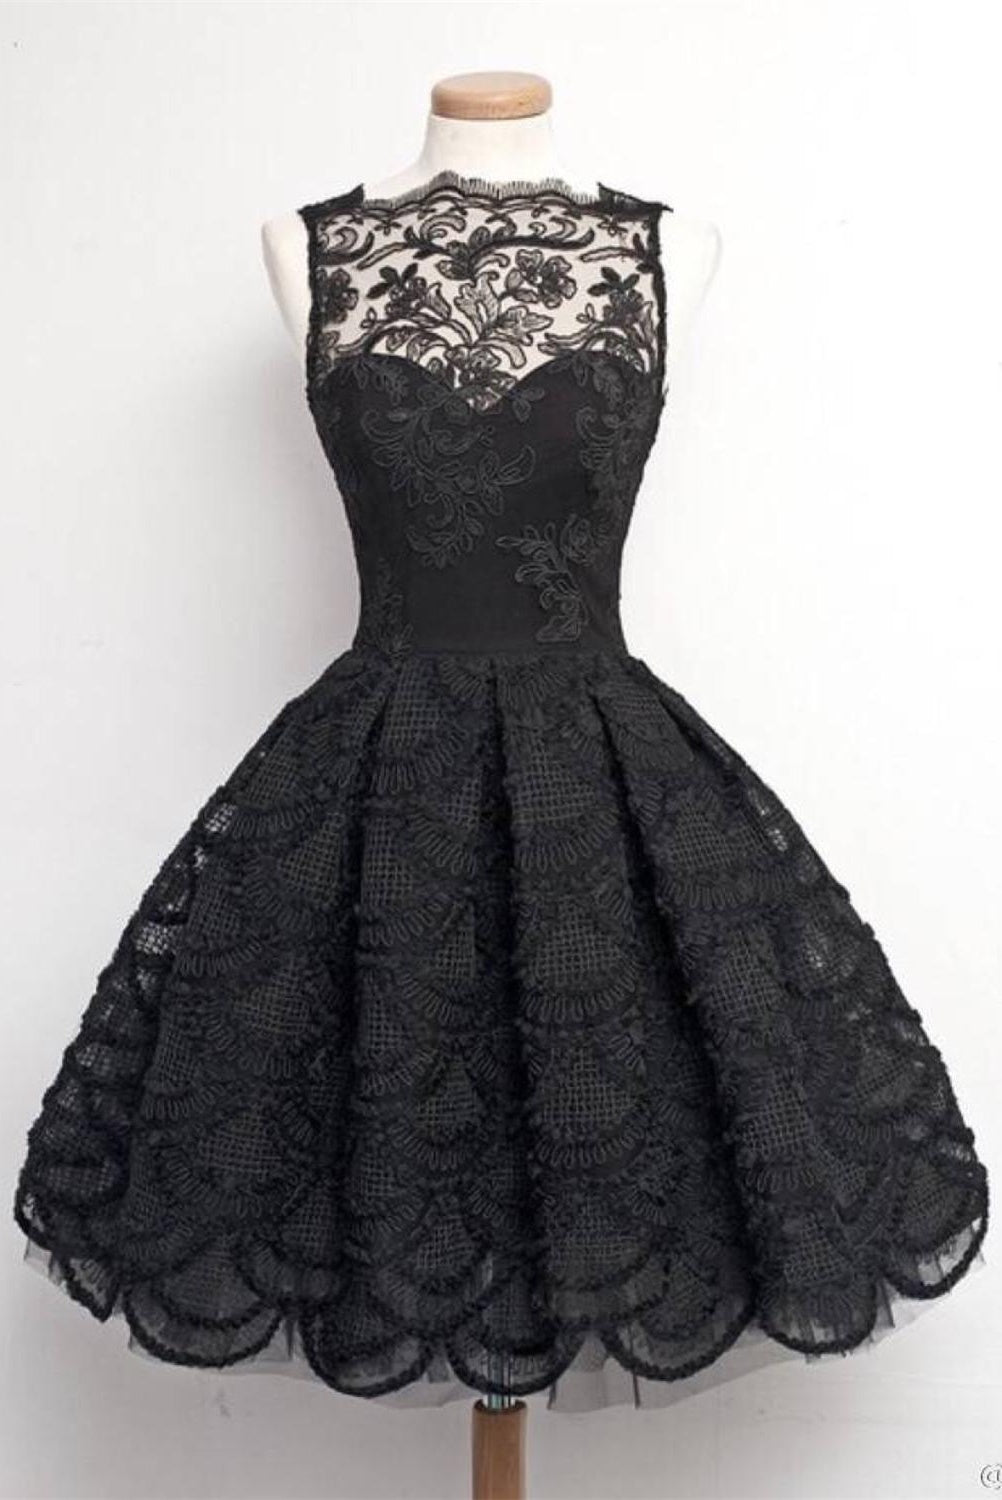 922bdd13e Vintage Black Lace A-line Modest Homecoming Dresses For Teens Z0043 ...